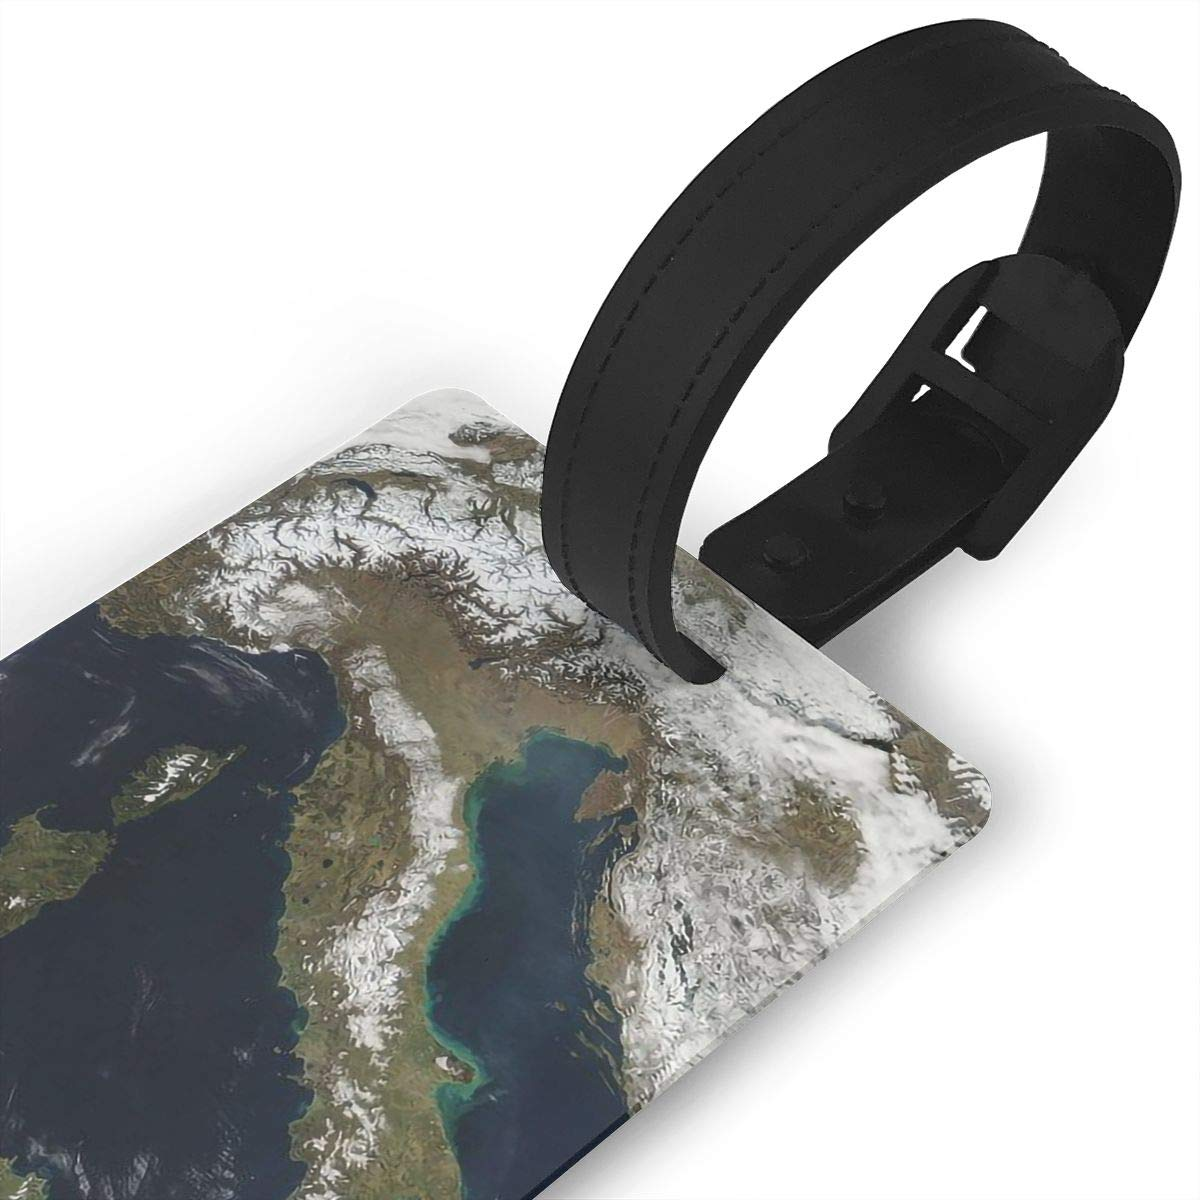 World Map Cruise Luggage Tag For Suitcase Bag Accessories 2 Pack Luggage Tags